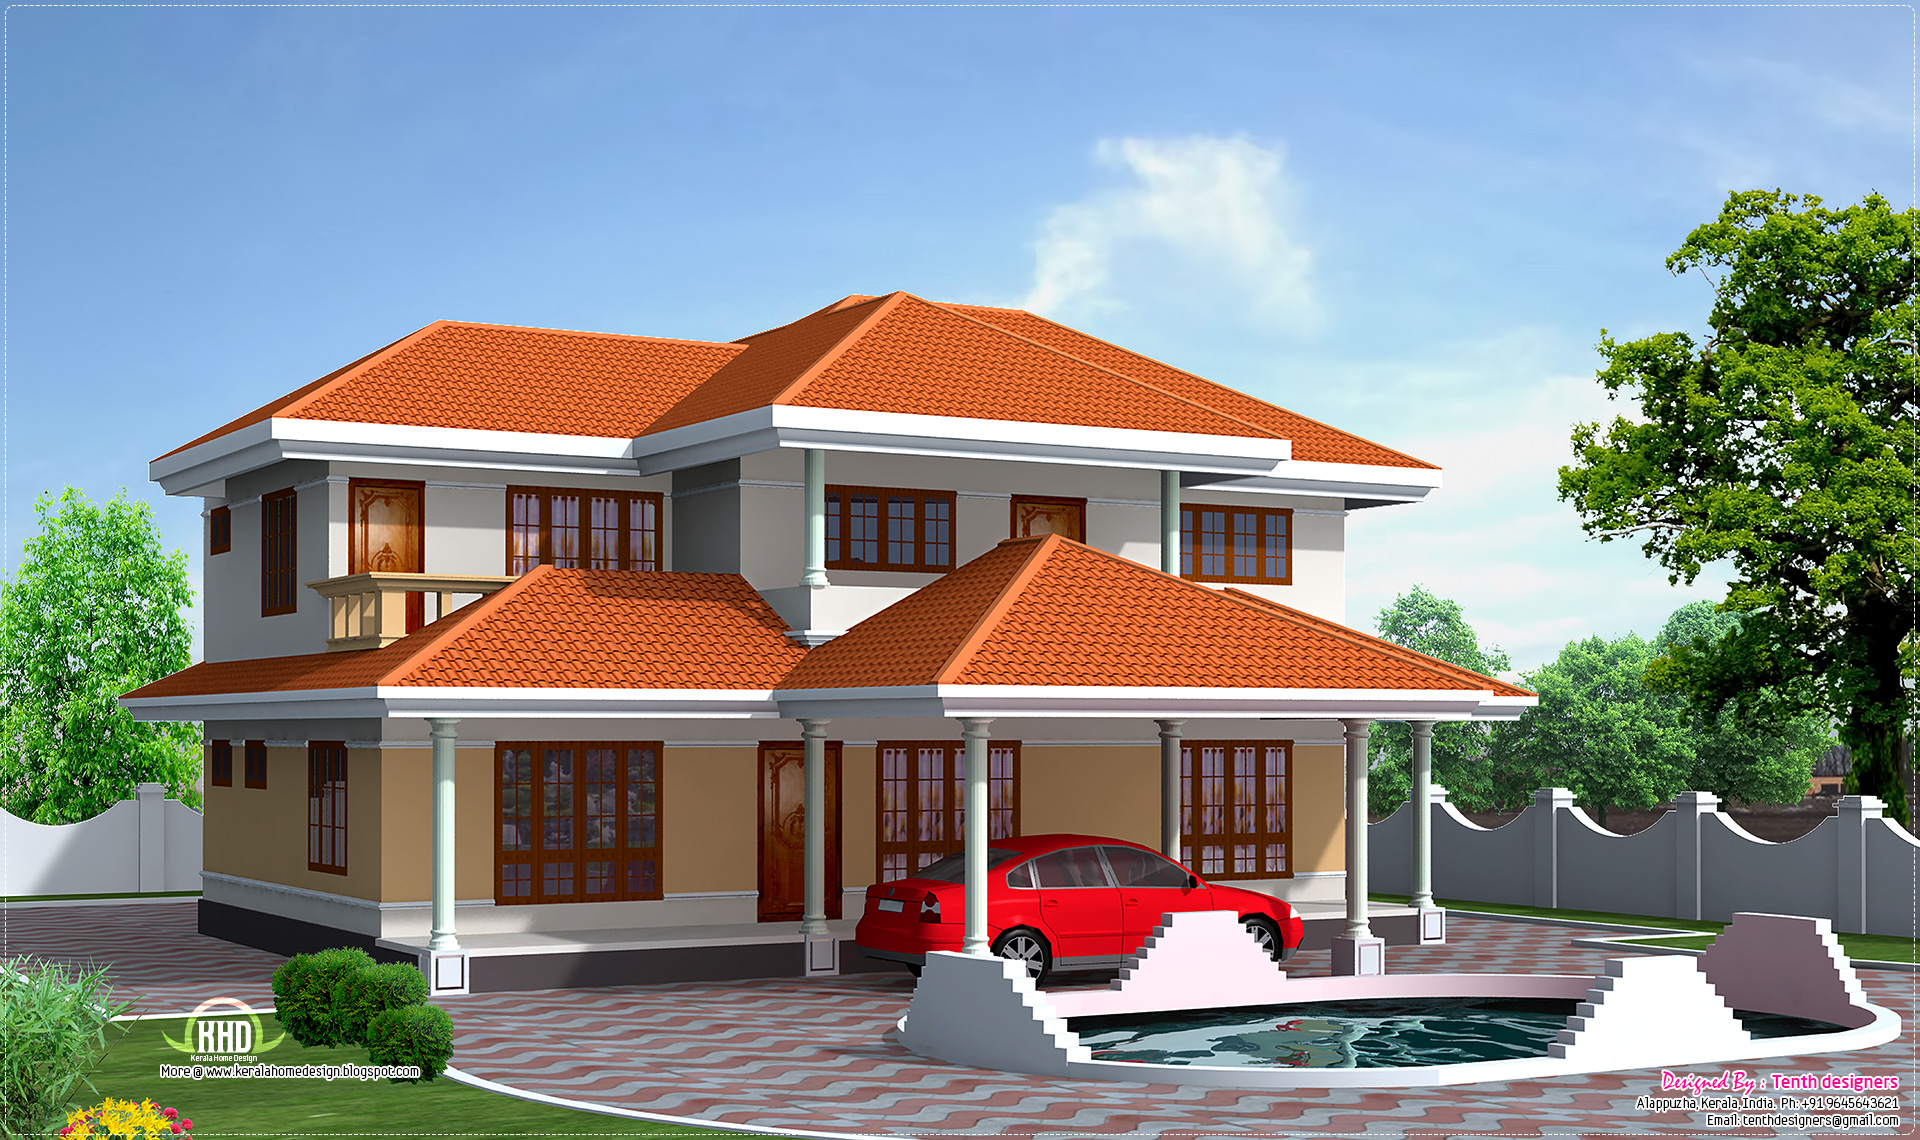 Four bedroom house elevation in 2500 sq feet kerala for 2500 sq ft home